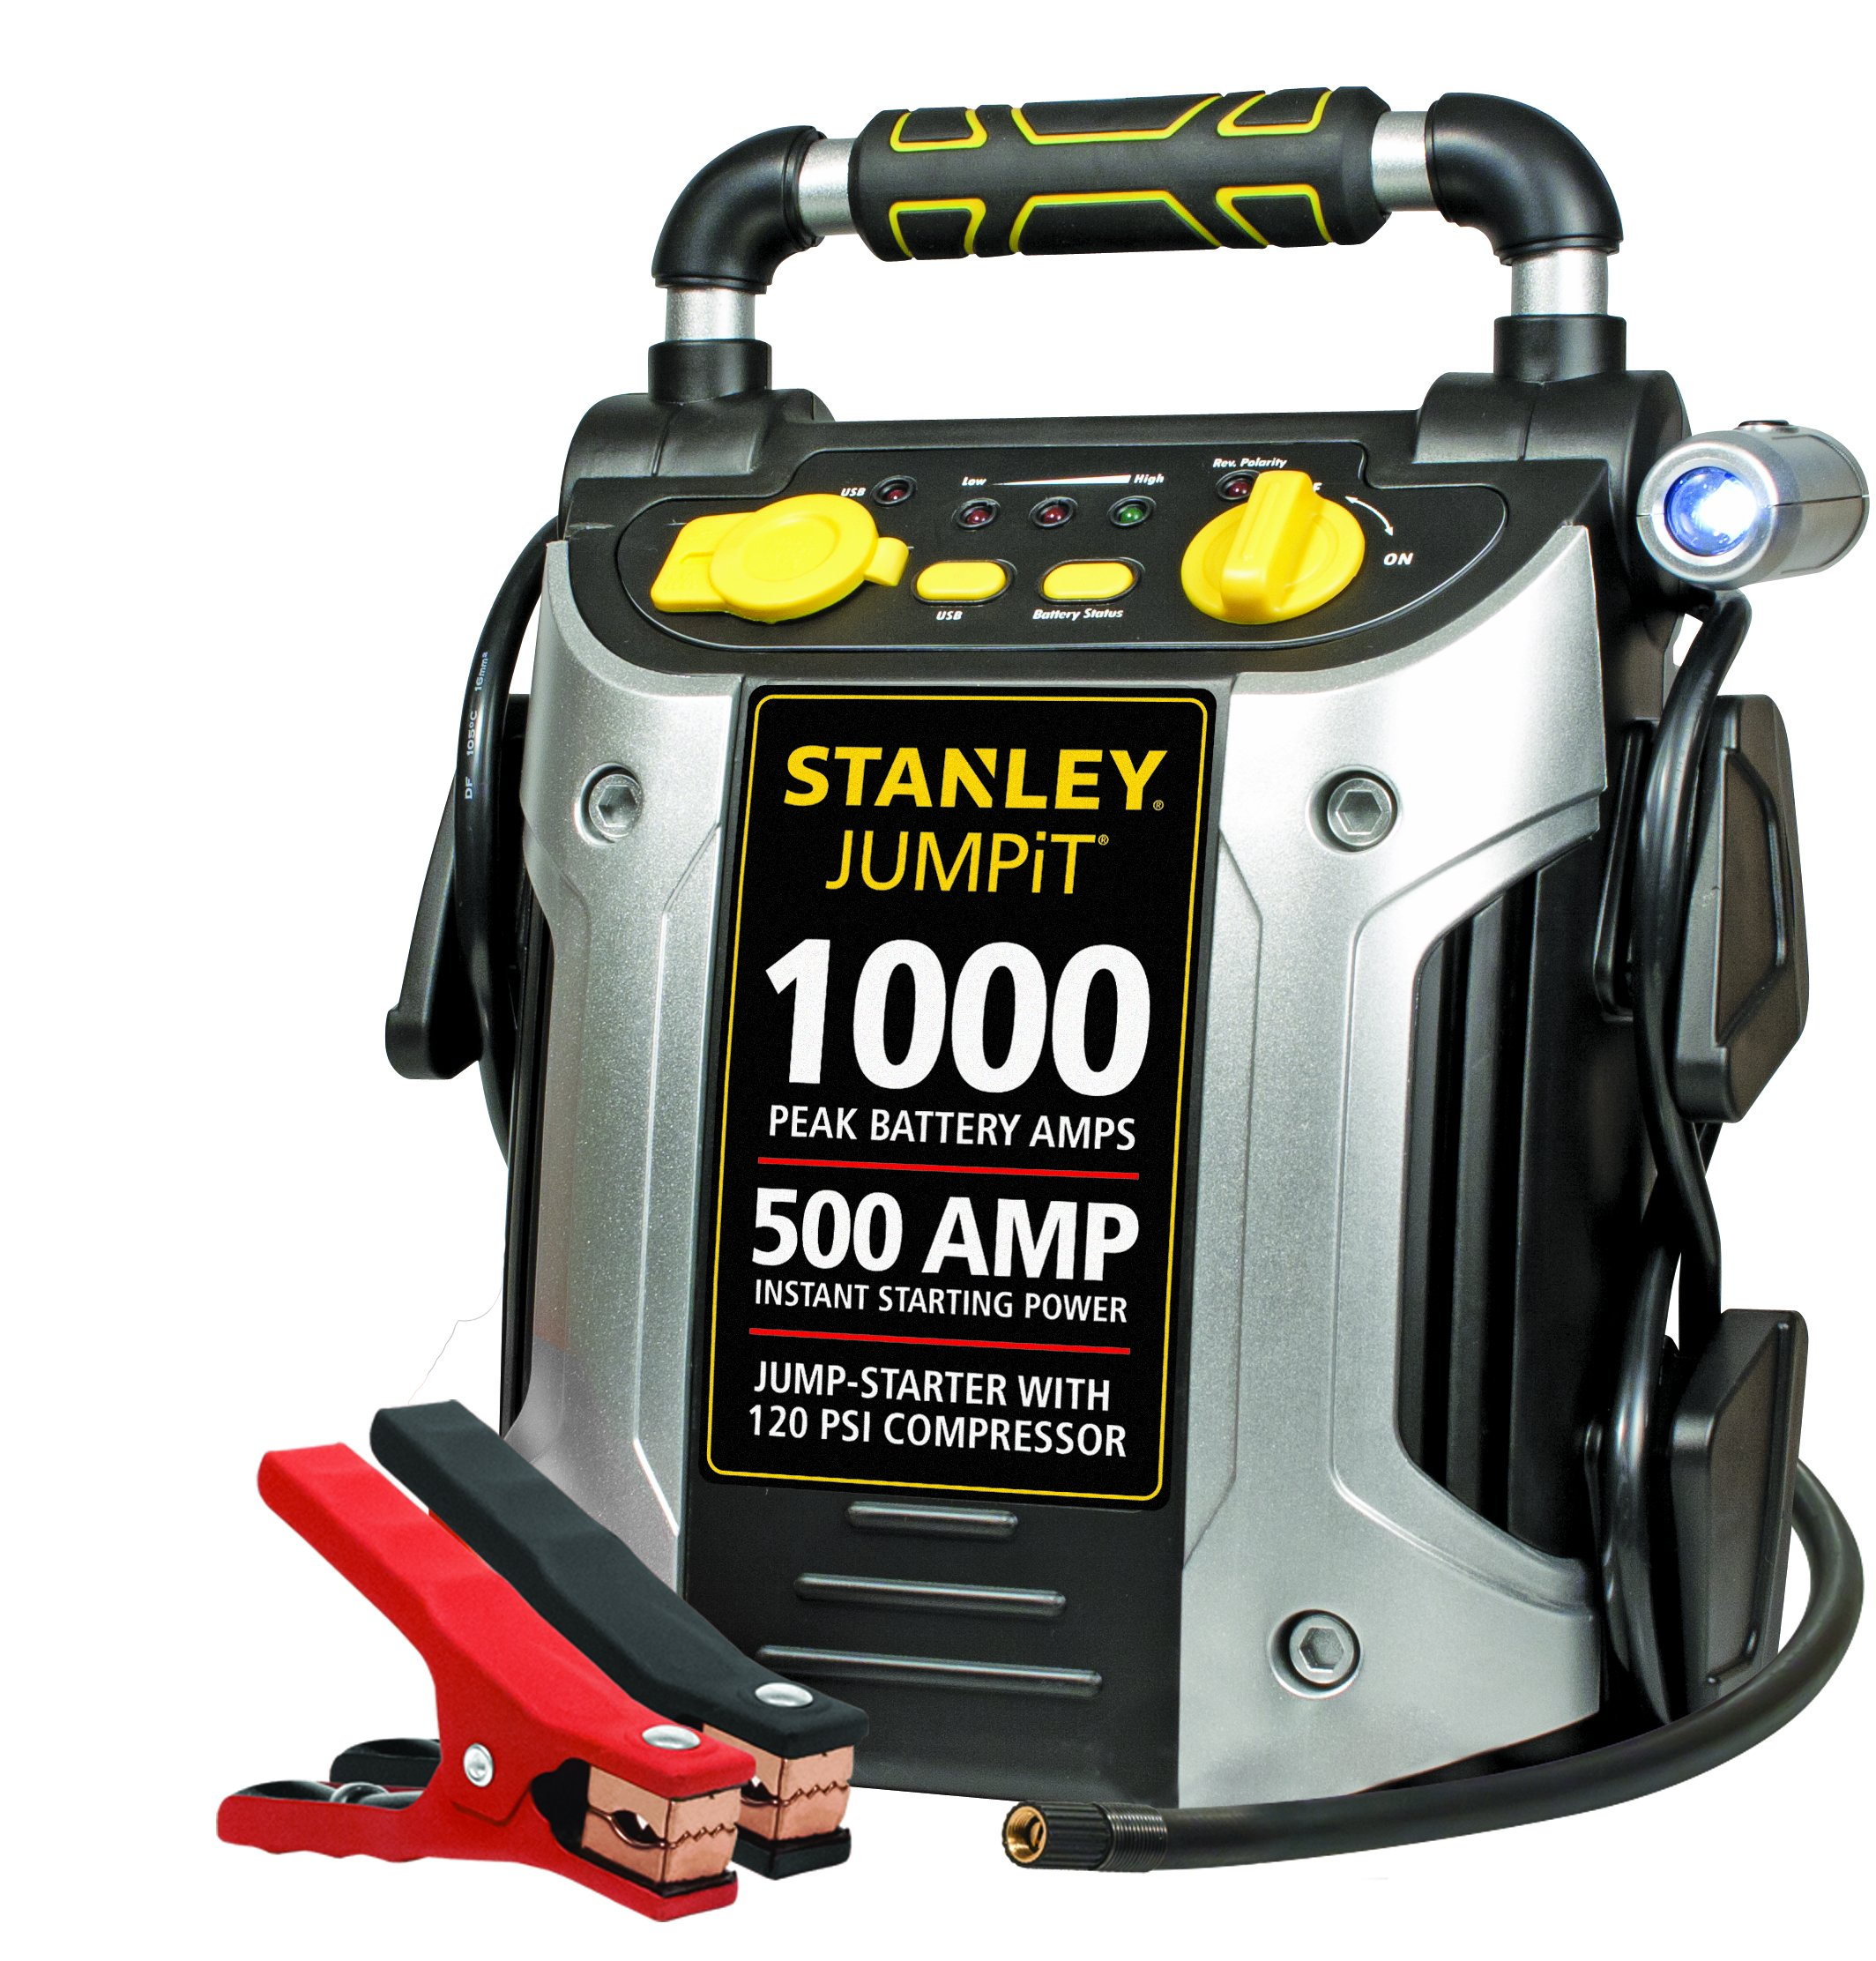 STANLEY J5C09 Power Station Jump Starter: 1000 Peak/500 Instant Amps, 120 PSI Air Compressor, Battery Clamps by STANLEY